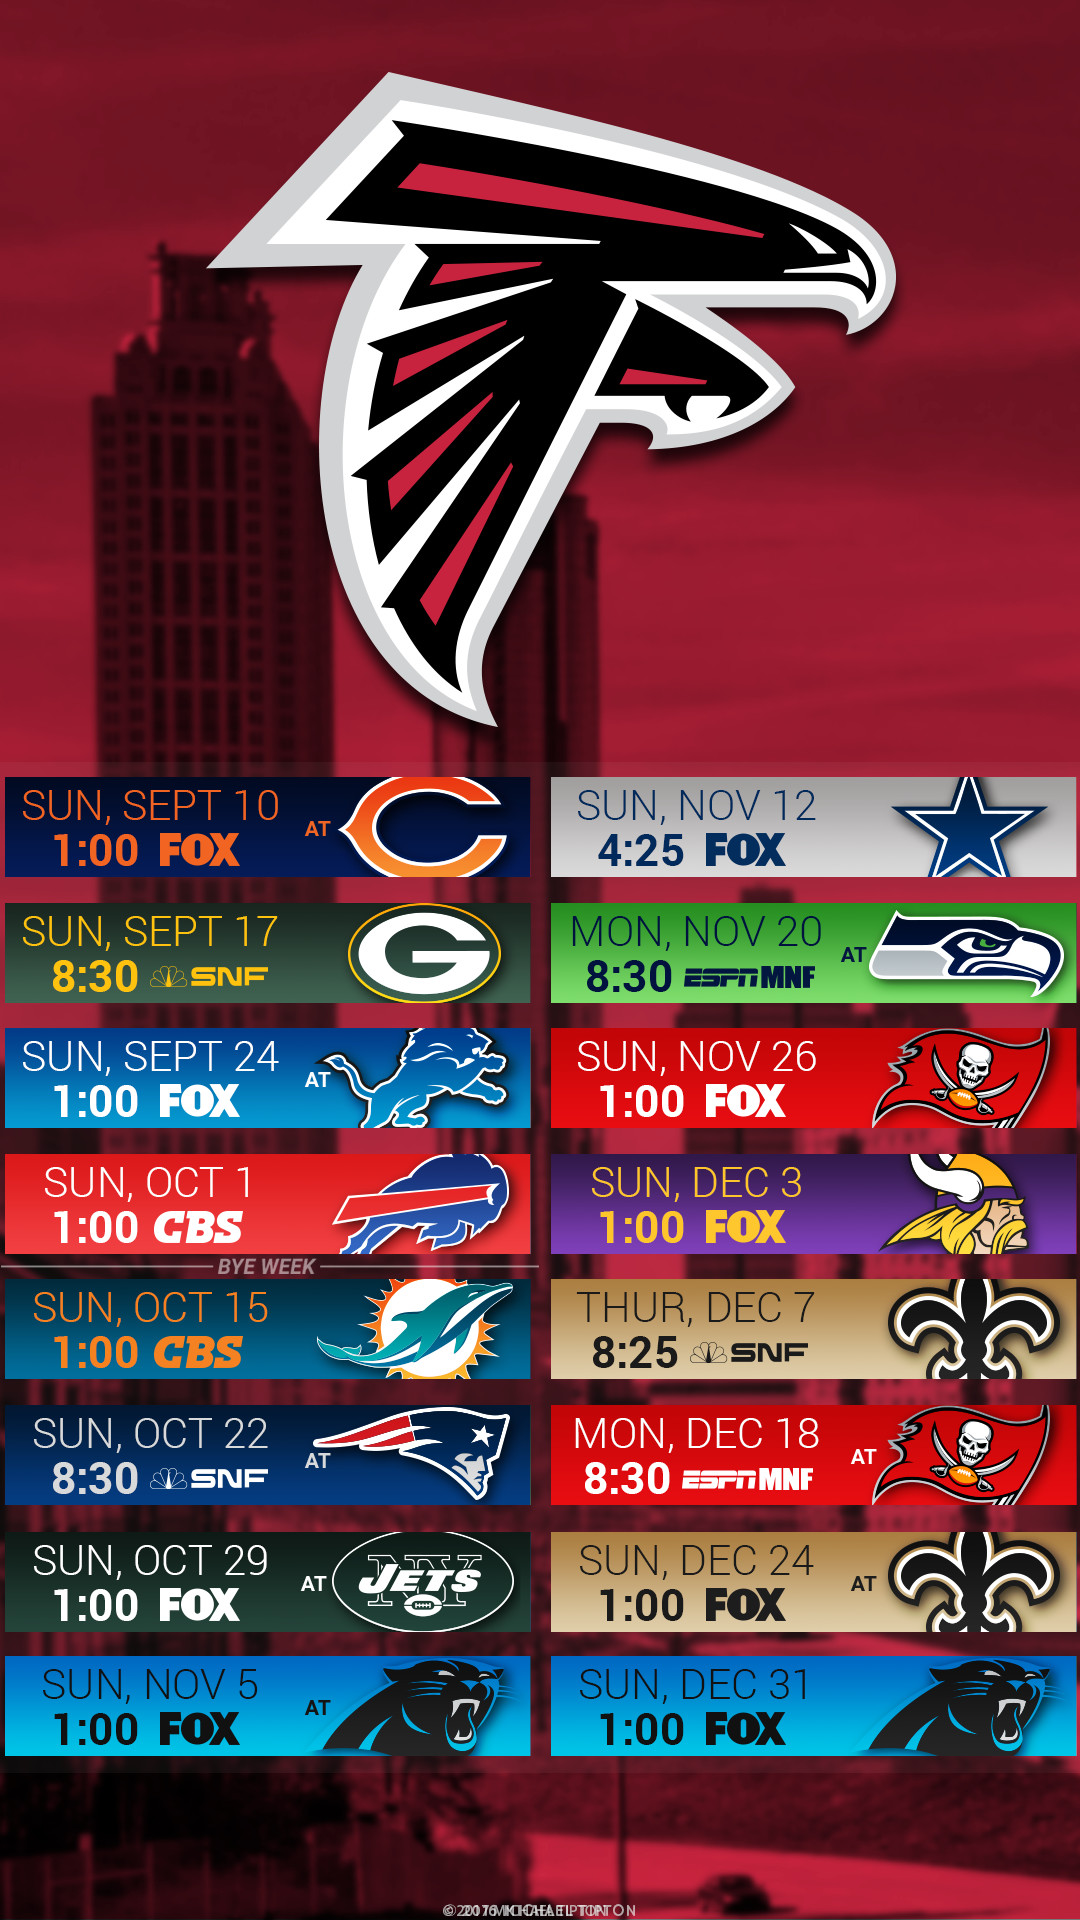 1080x1920 Atlanta Falcons 2017 Schedule Turf Logo Wallpaper Free Iphone 5 6 7